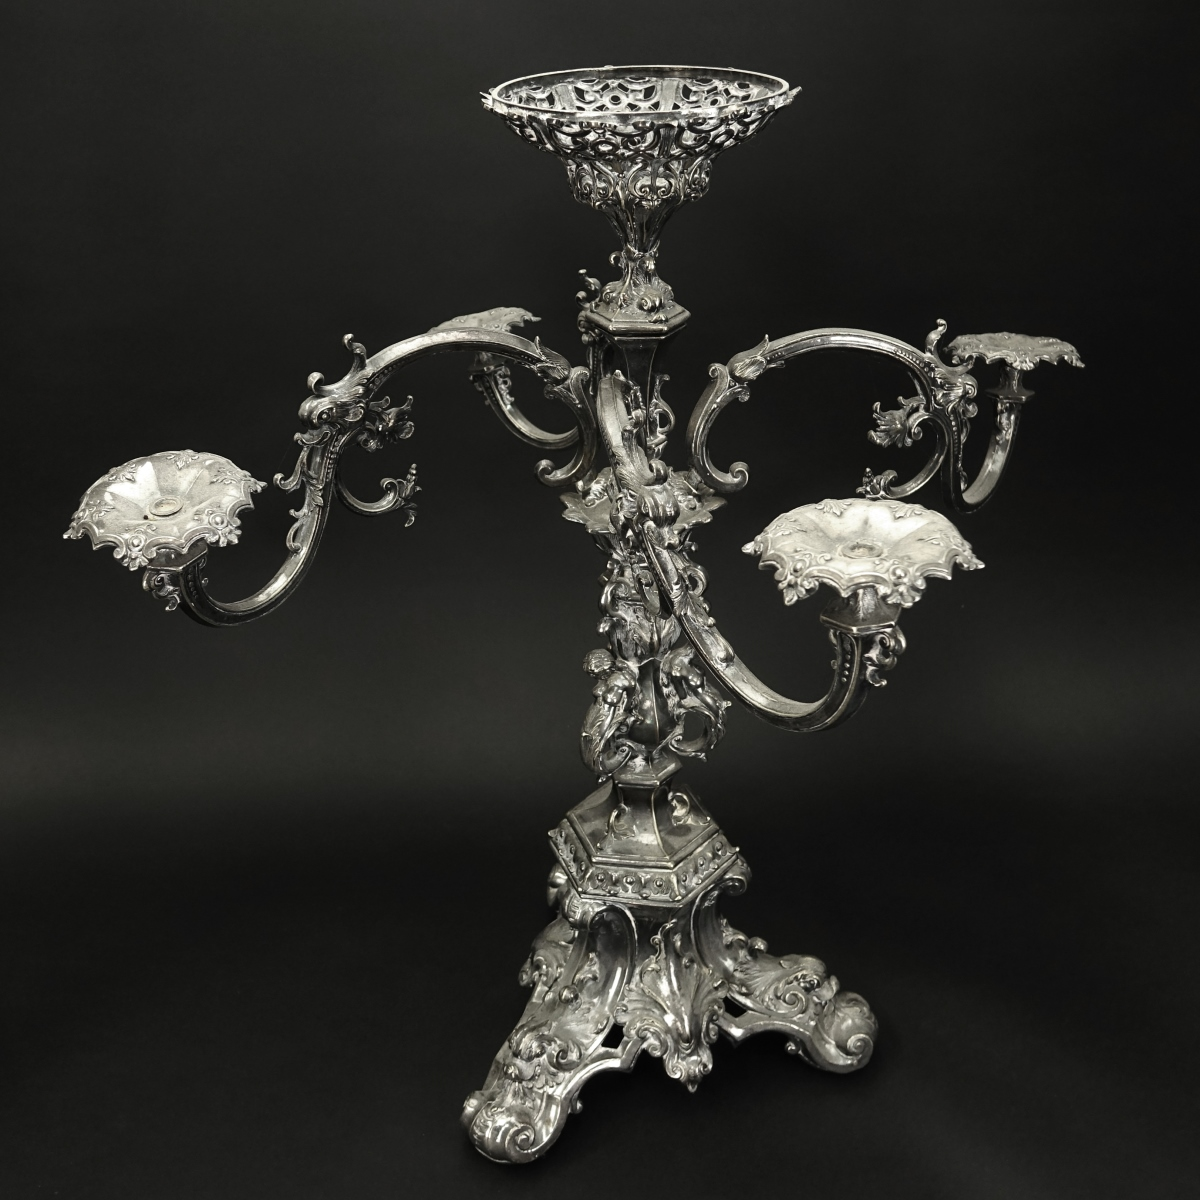 19th C. Silver Over Bronze Epergne Centerpiece